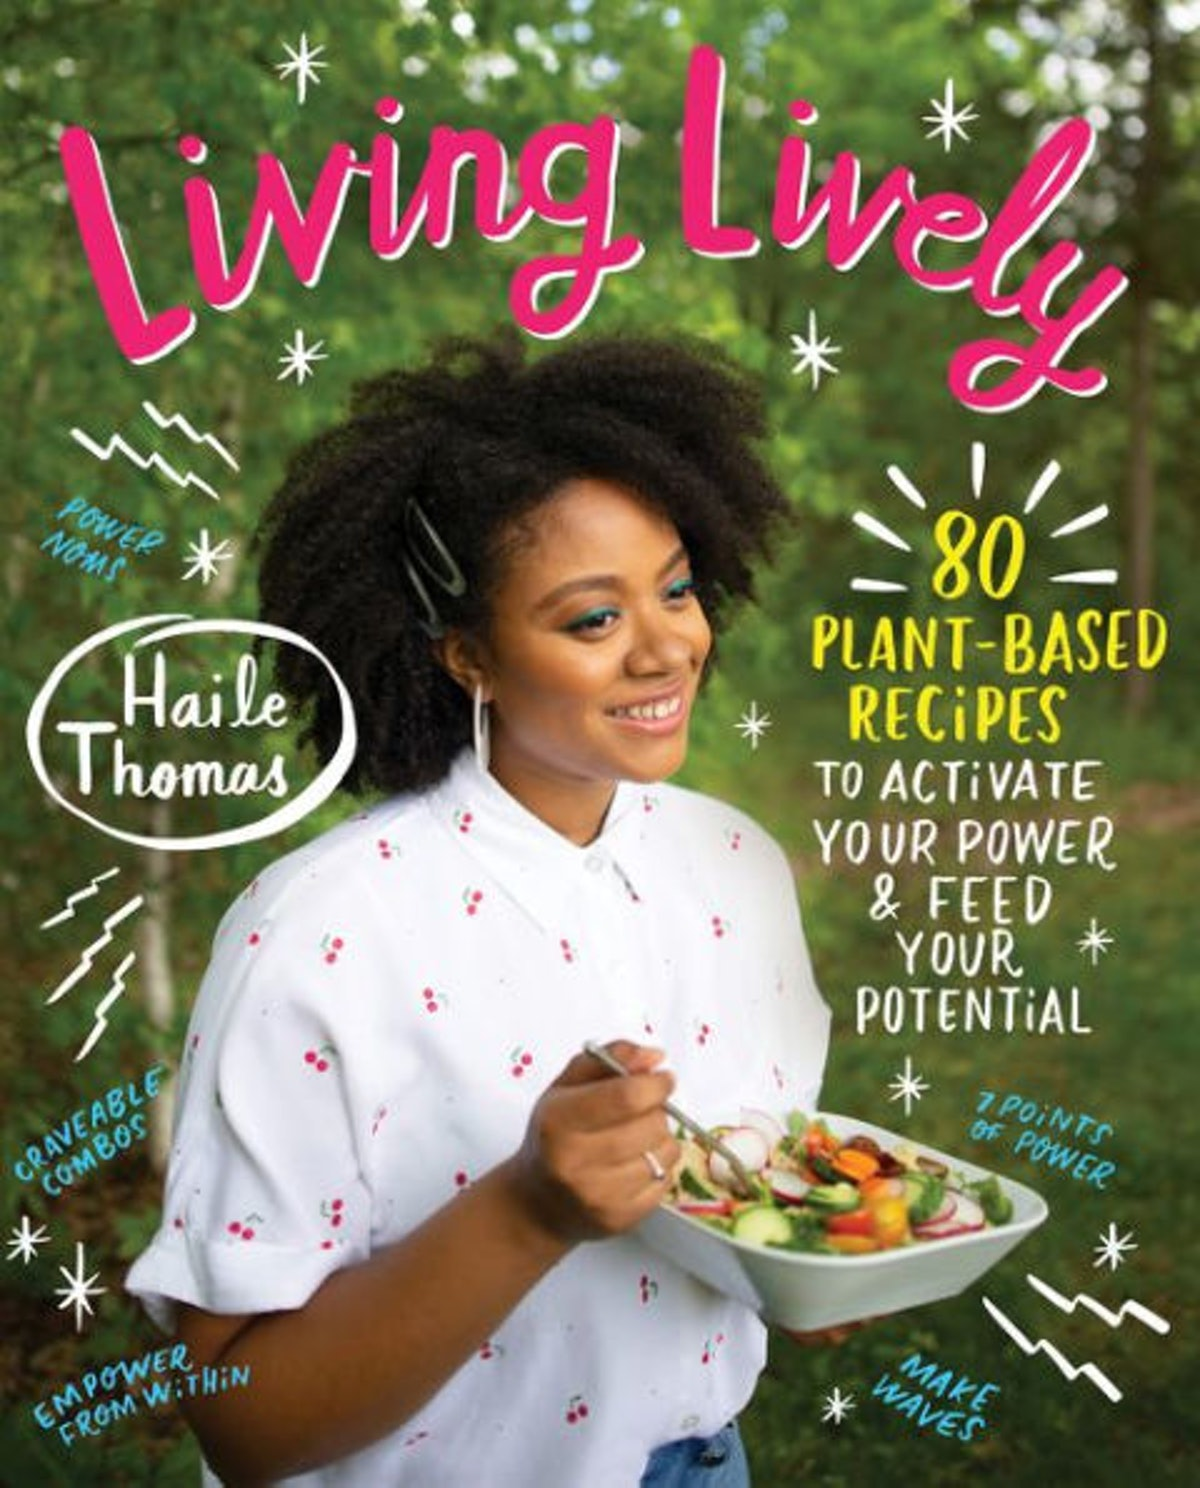 'Living Lively: 80 Plant-Based Recipes to Activate Your Power and Feed Your Potential' by Haile Thomas